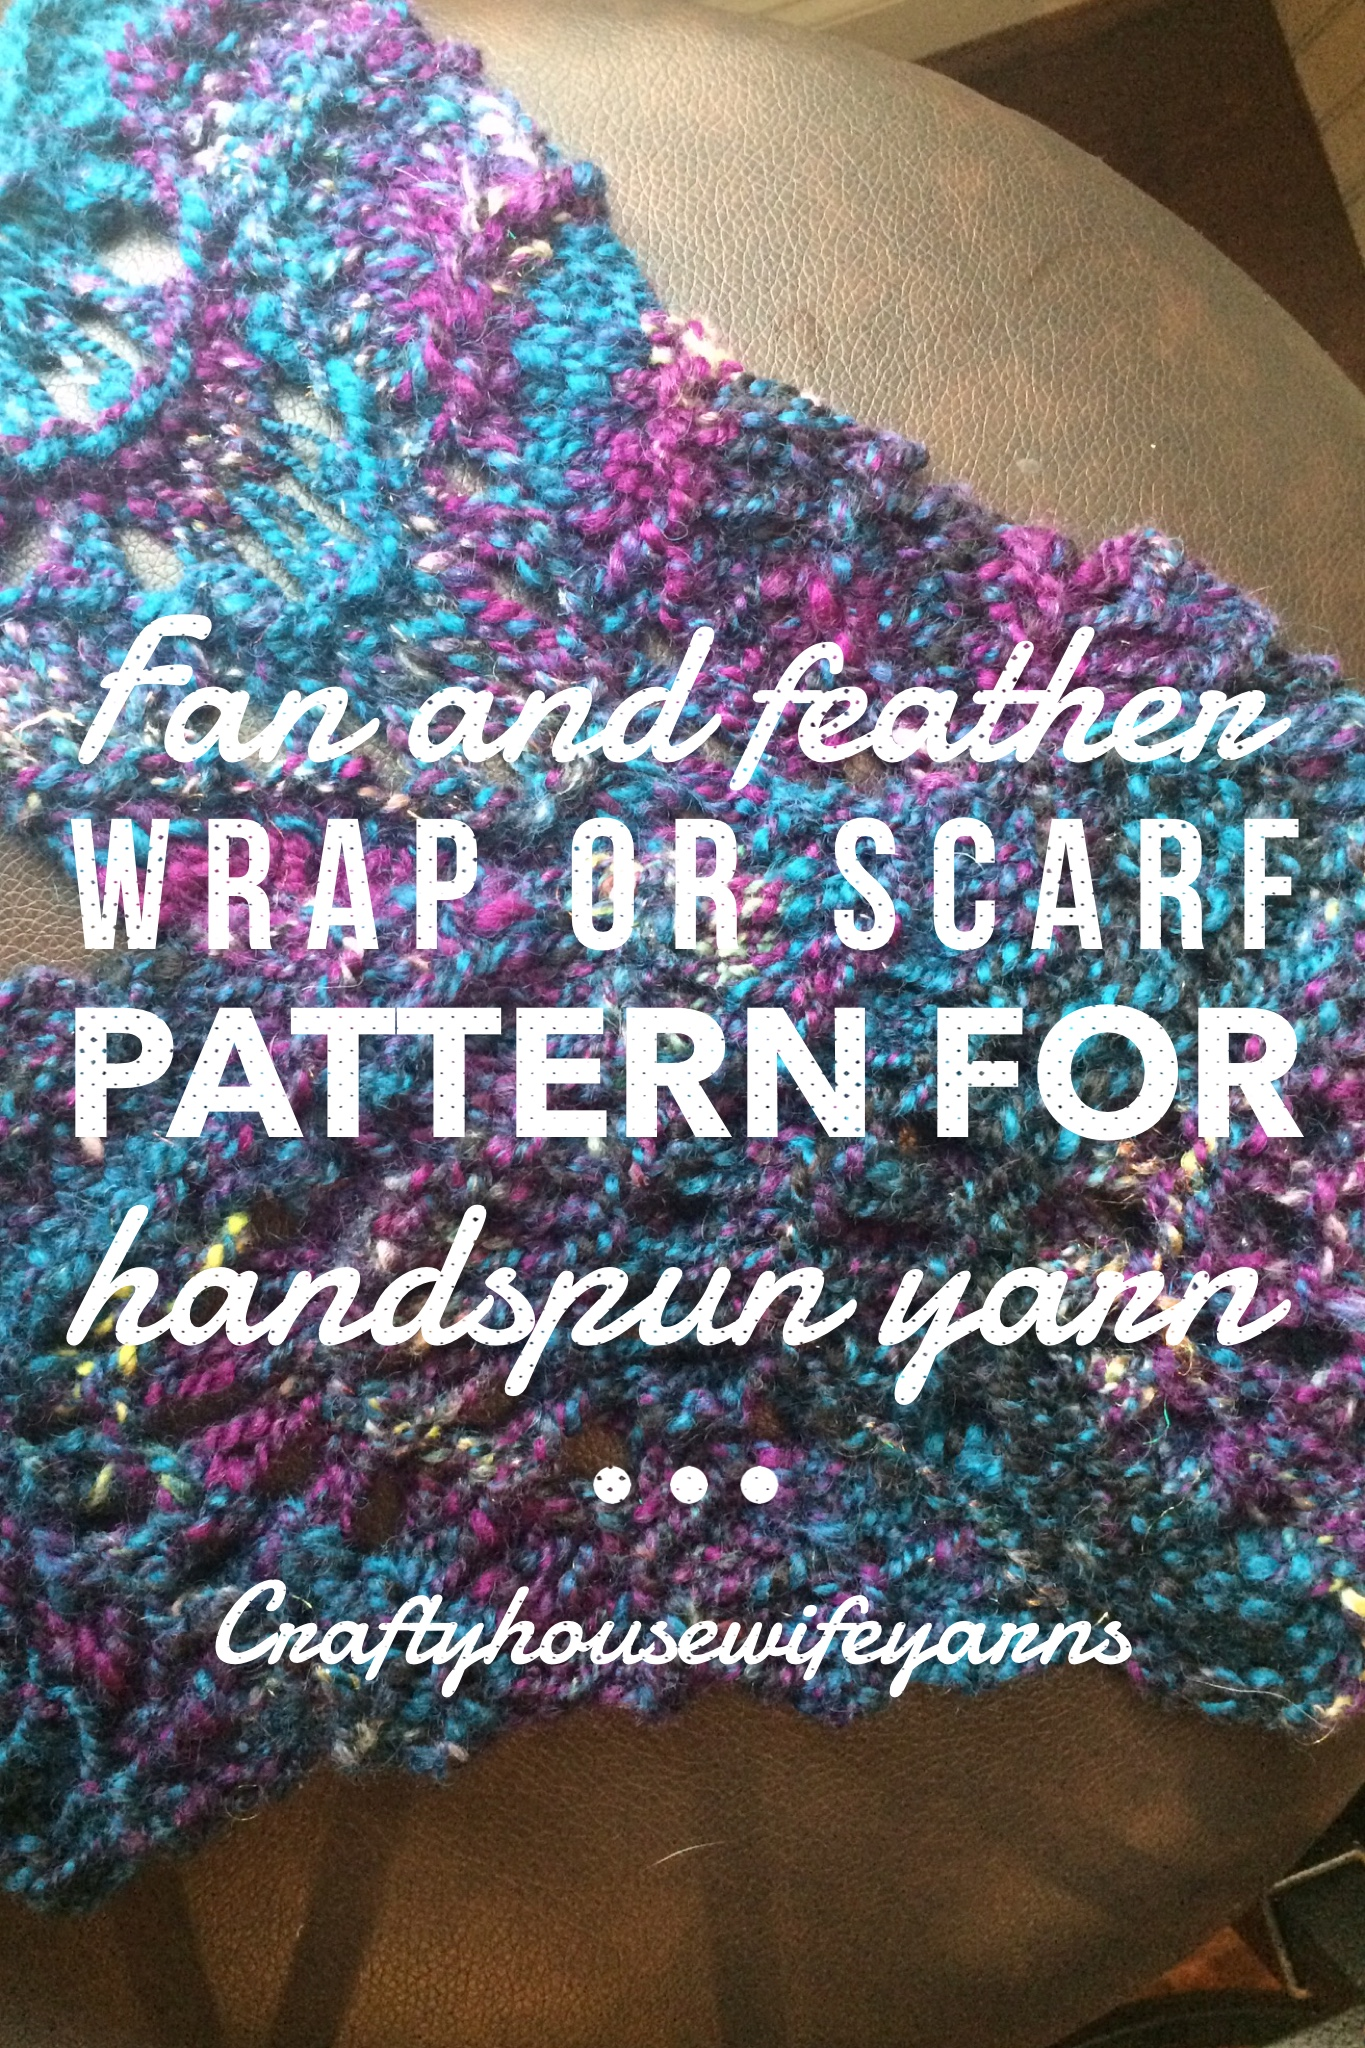 click image for free pattern